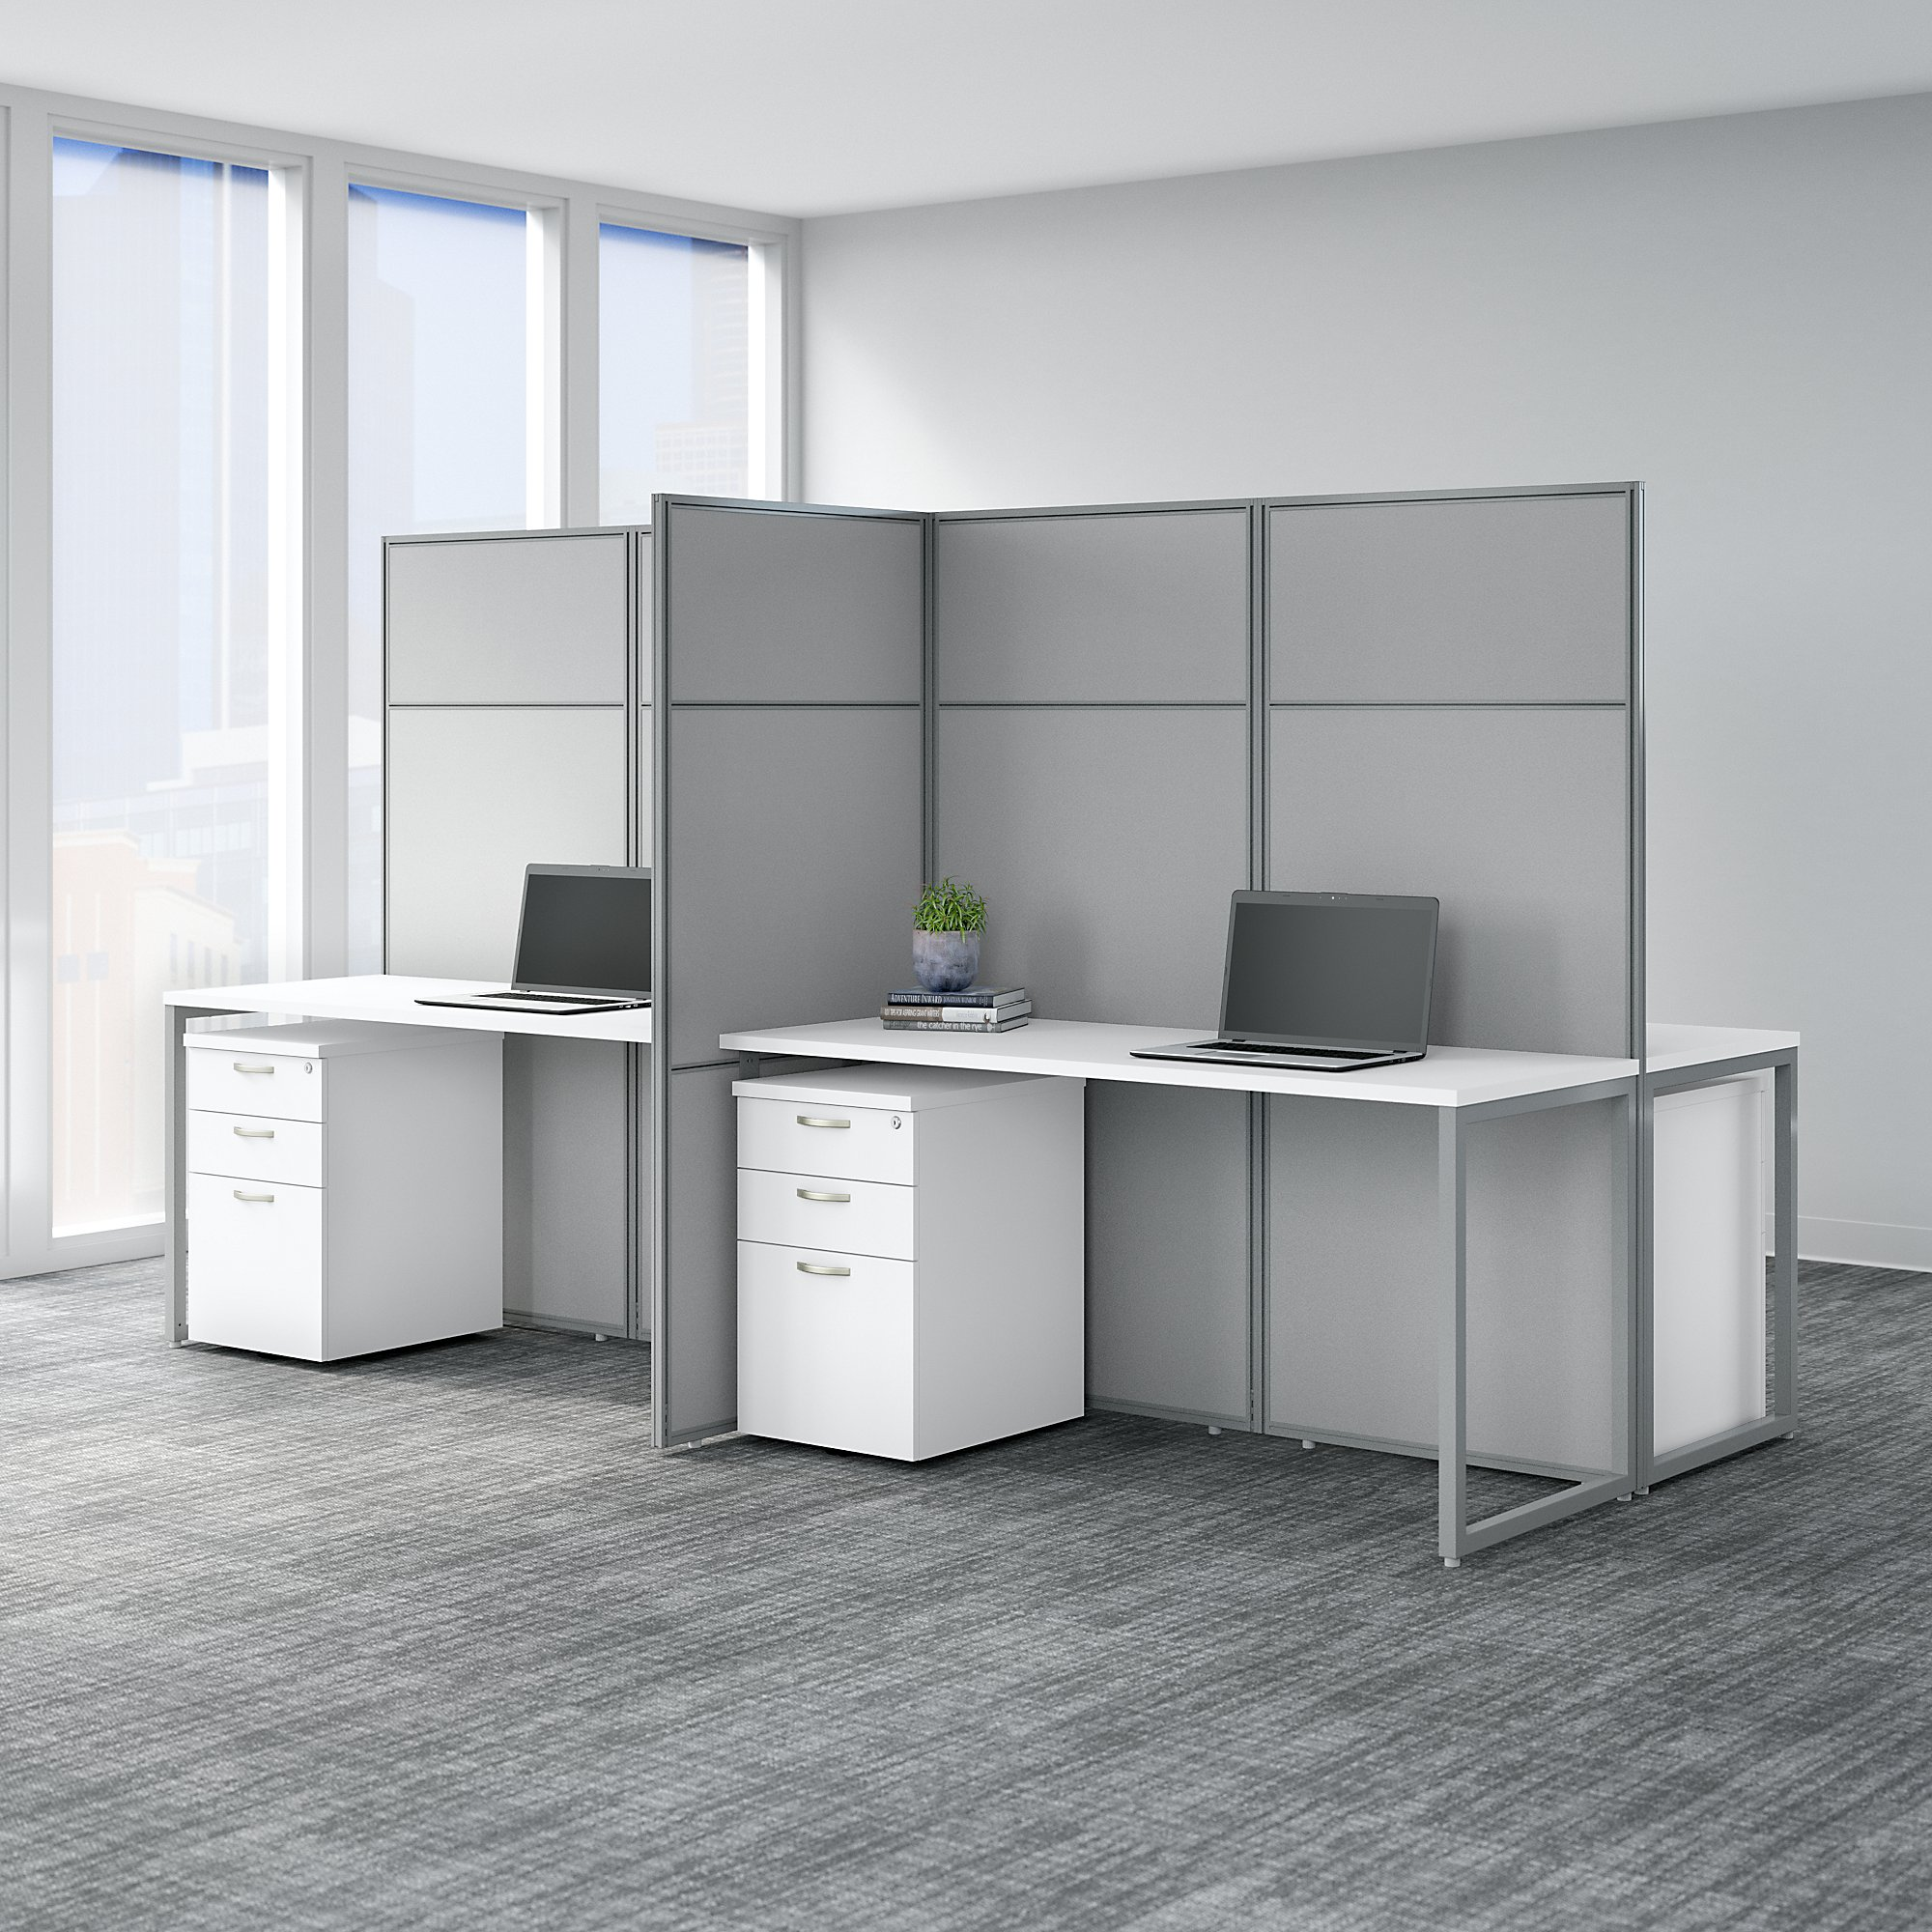 easy office 4 person cubicle with storage in pure white